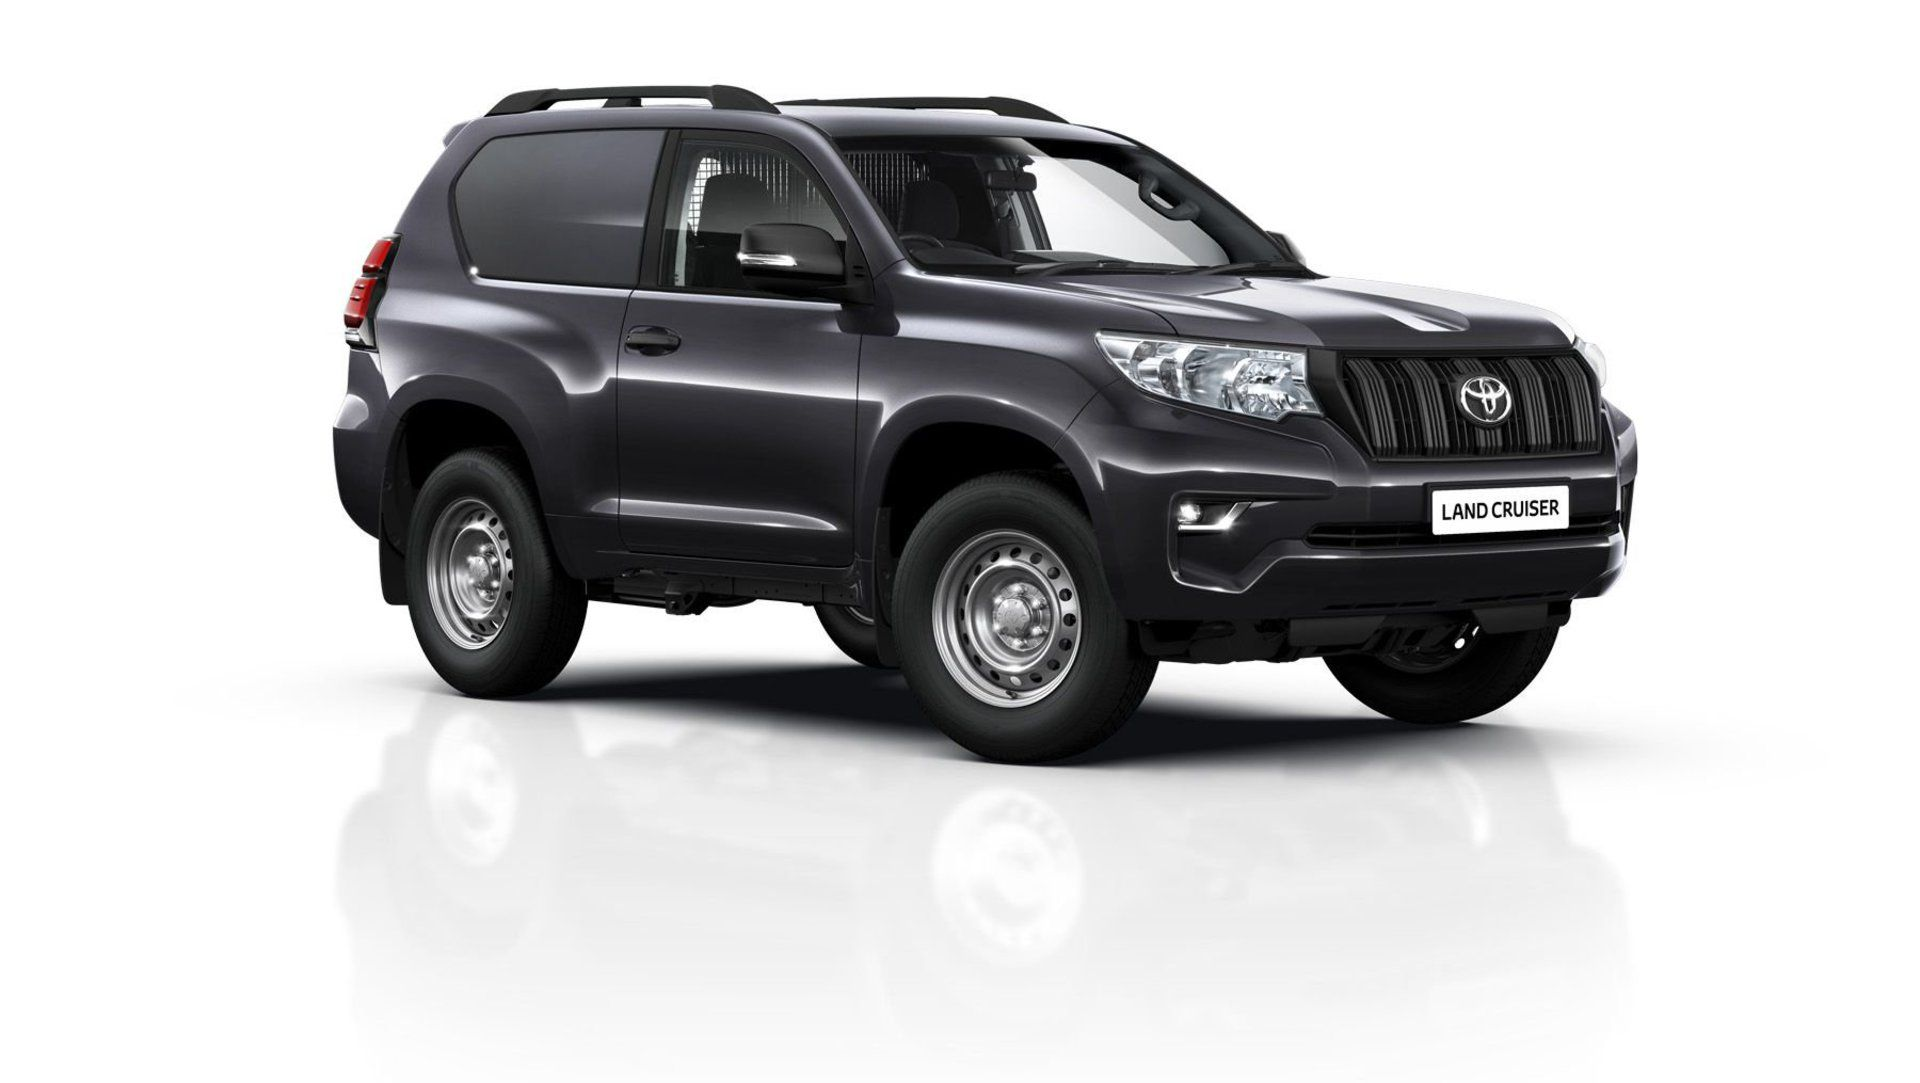 Toyota Launches New Land Cruiser Utility mercial For Demanding UK